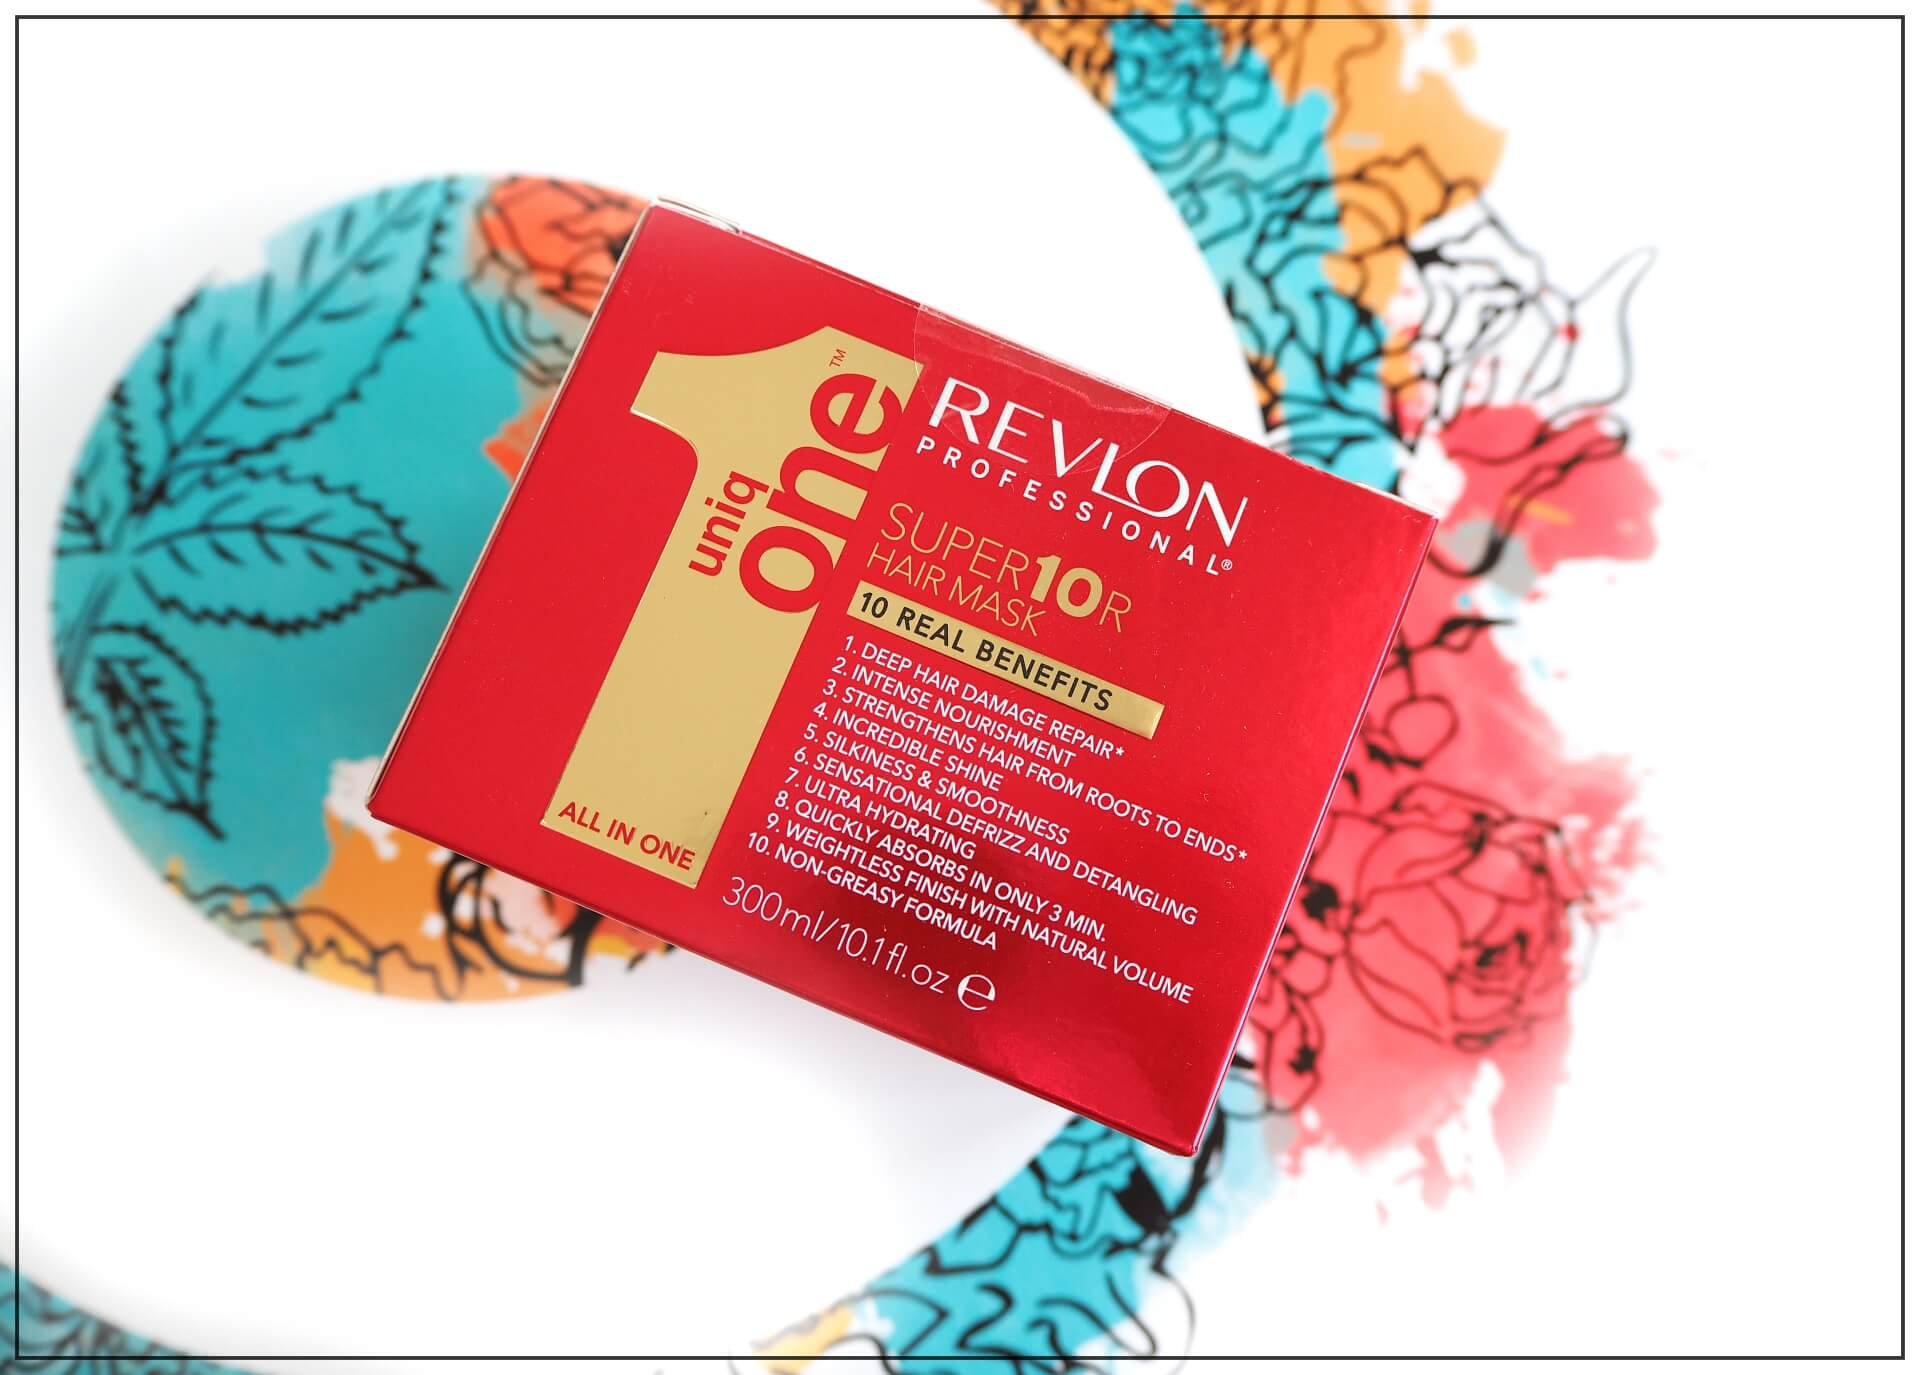 Revlon Uniq One Super 10R